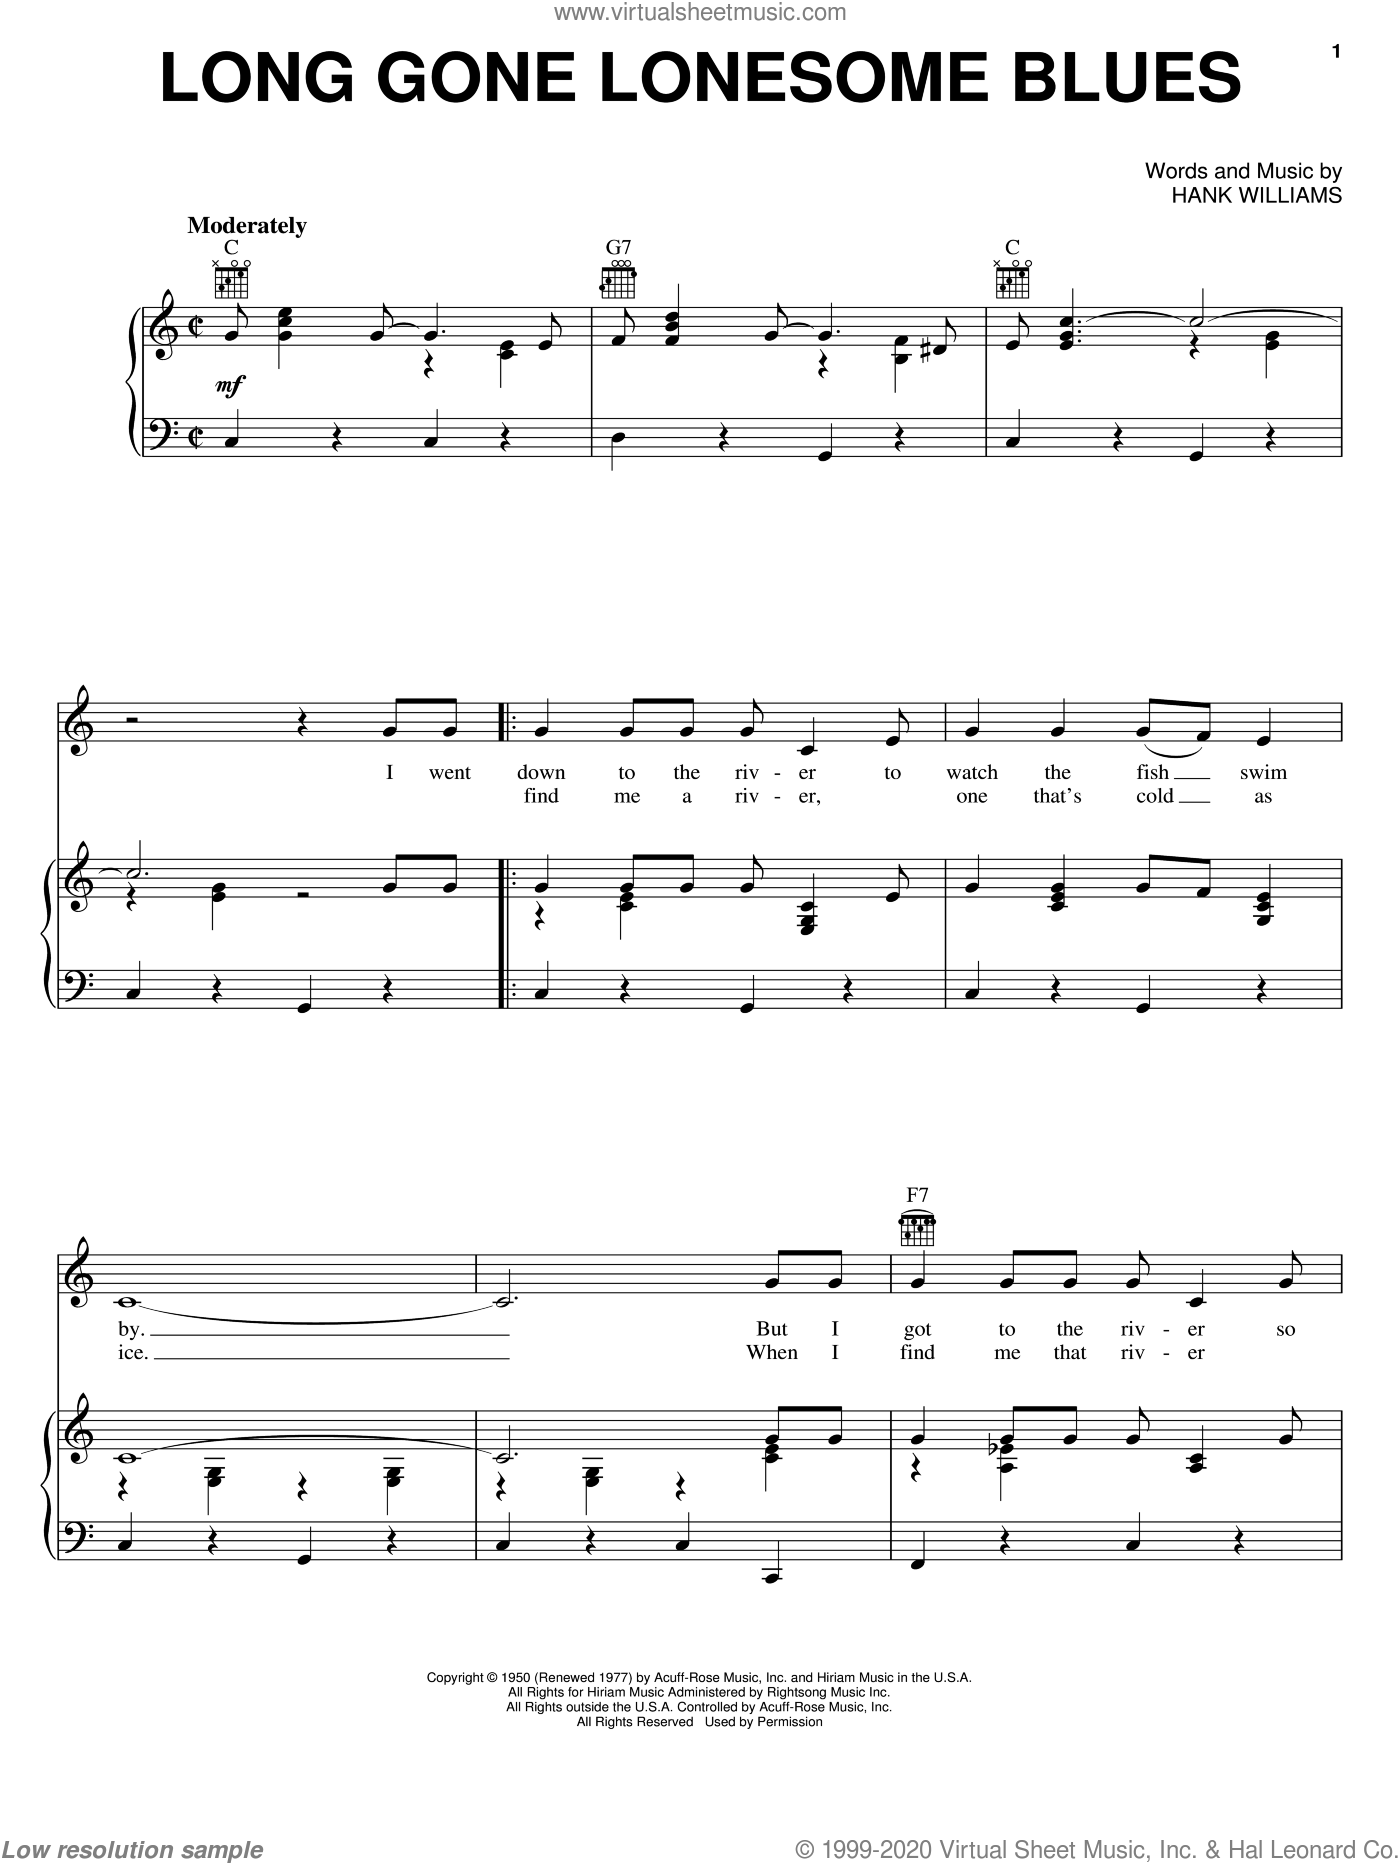 Long Gone Lonesome Blues sheet music for voice, piano or guitar by Hank Williams, intermediate. Score Image Preview.